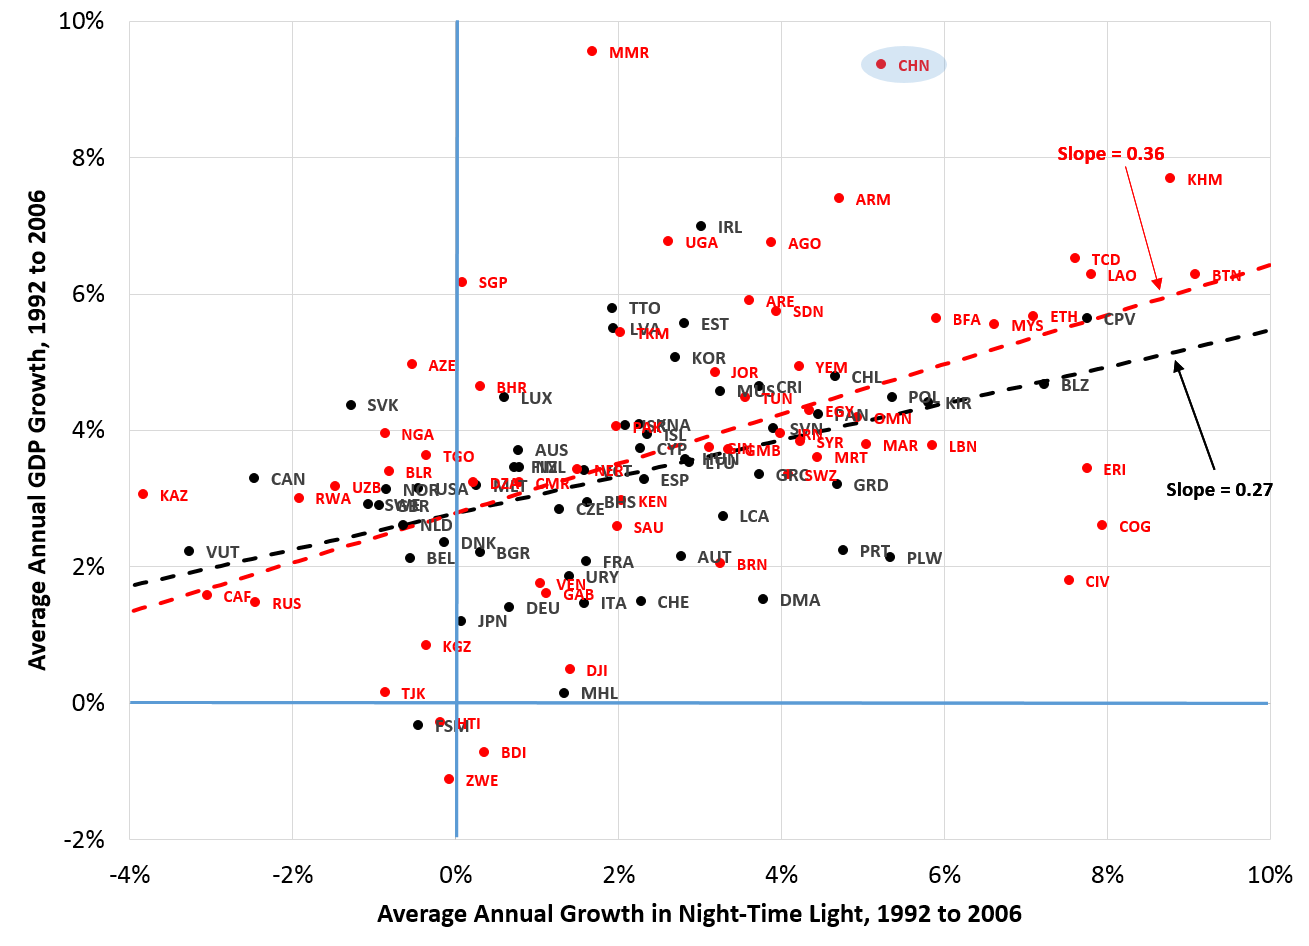 """Notes: Data are from Panel B of Figure 6 in  Henderson, Storeygard and Weil  and the  Freedom House . The difference between """"free"""" and """"not free"""" countries is based on the average of both the FWI political rights and civil liberties indices over the period 1992 to 2006; countries with an index level of greater than 4 are not free, and those with an index below 2 are free.) The dashed lines are constructed from the regression of GDP growth on the growth of light, and on the product of a dummy variable that takes on a value of 1 for the """"not free"""" countries and the growth of light. The estimates are based on the entire data set, including """"partially free"""" countries that are not shown in the plot. The intercept is restricted to be the same for all data."""